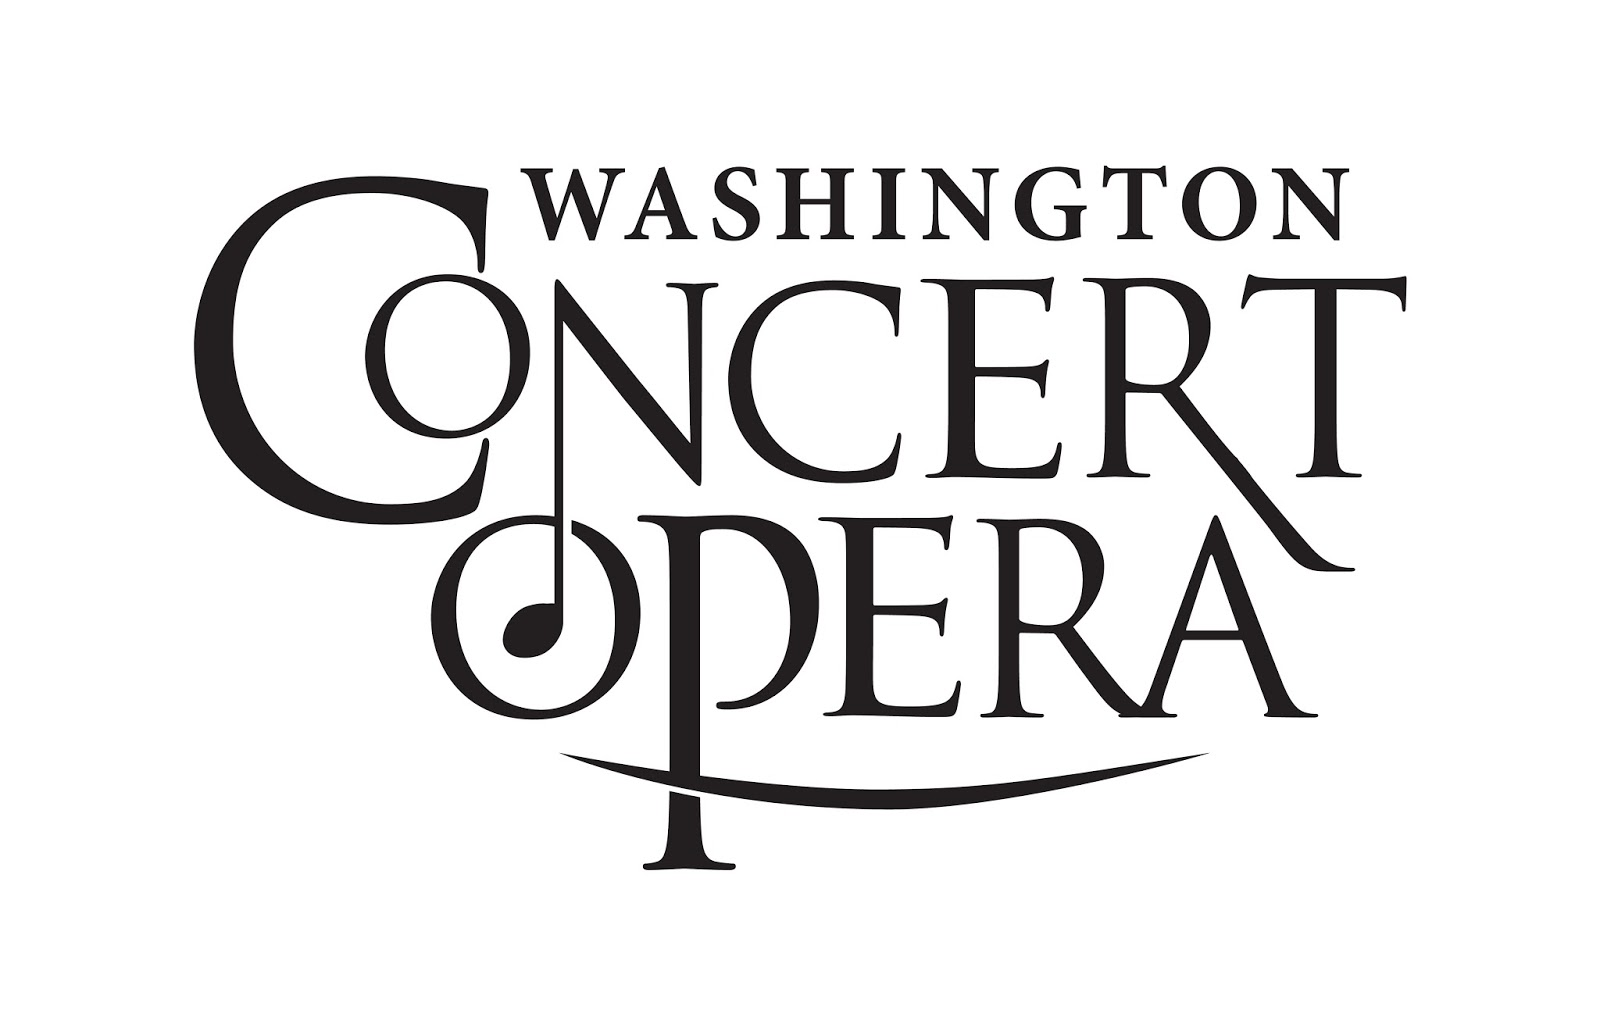 ARTS IN ACTION: Celebrating Washington Concert Opera's Thirtieth Anniversary [Graphic © by Washington Concert Opera]